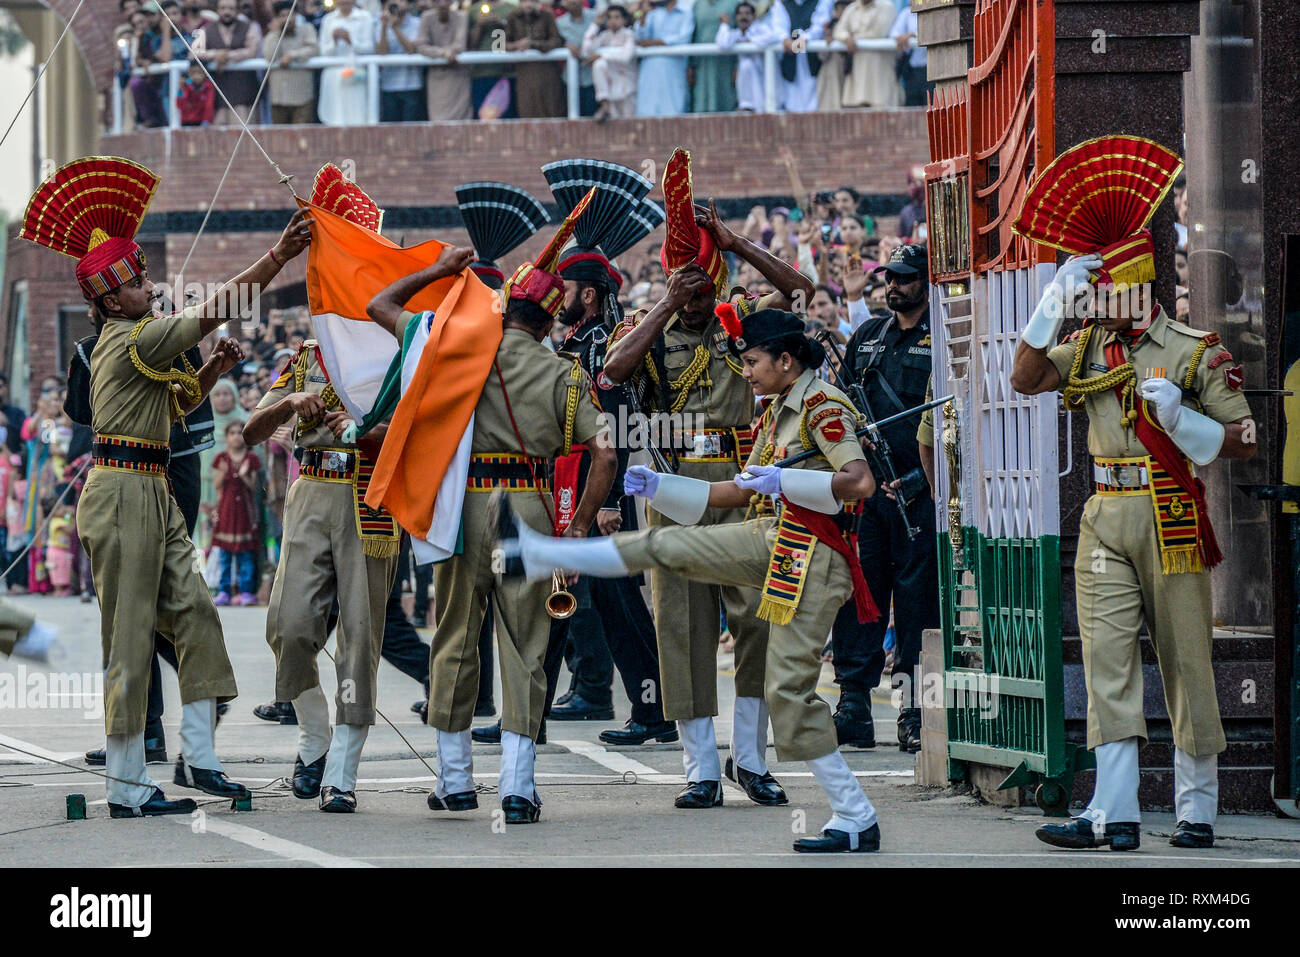 INDIA, ATTARI, The daily border closing ceremony at the Indian-Pakistan border at Wagah-Attari is an opera like spectacle which draws thou - Stock Image